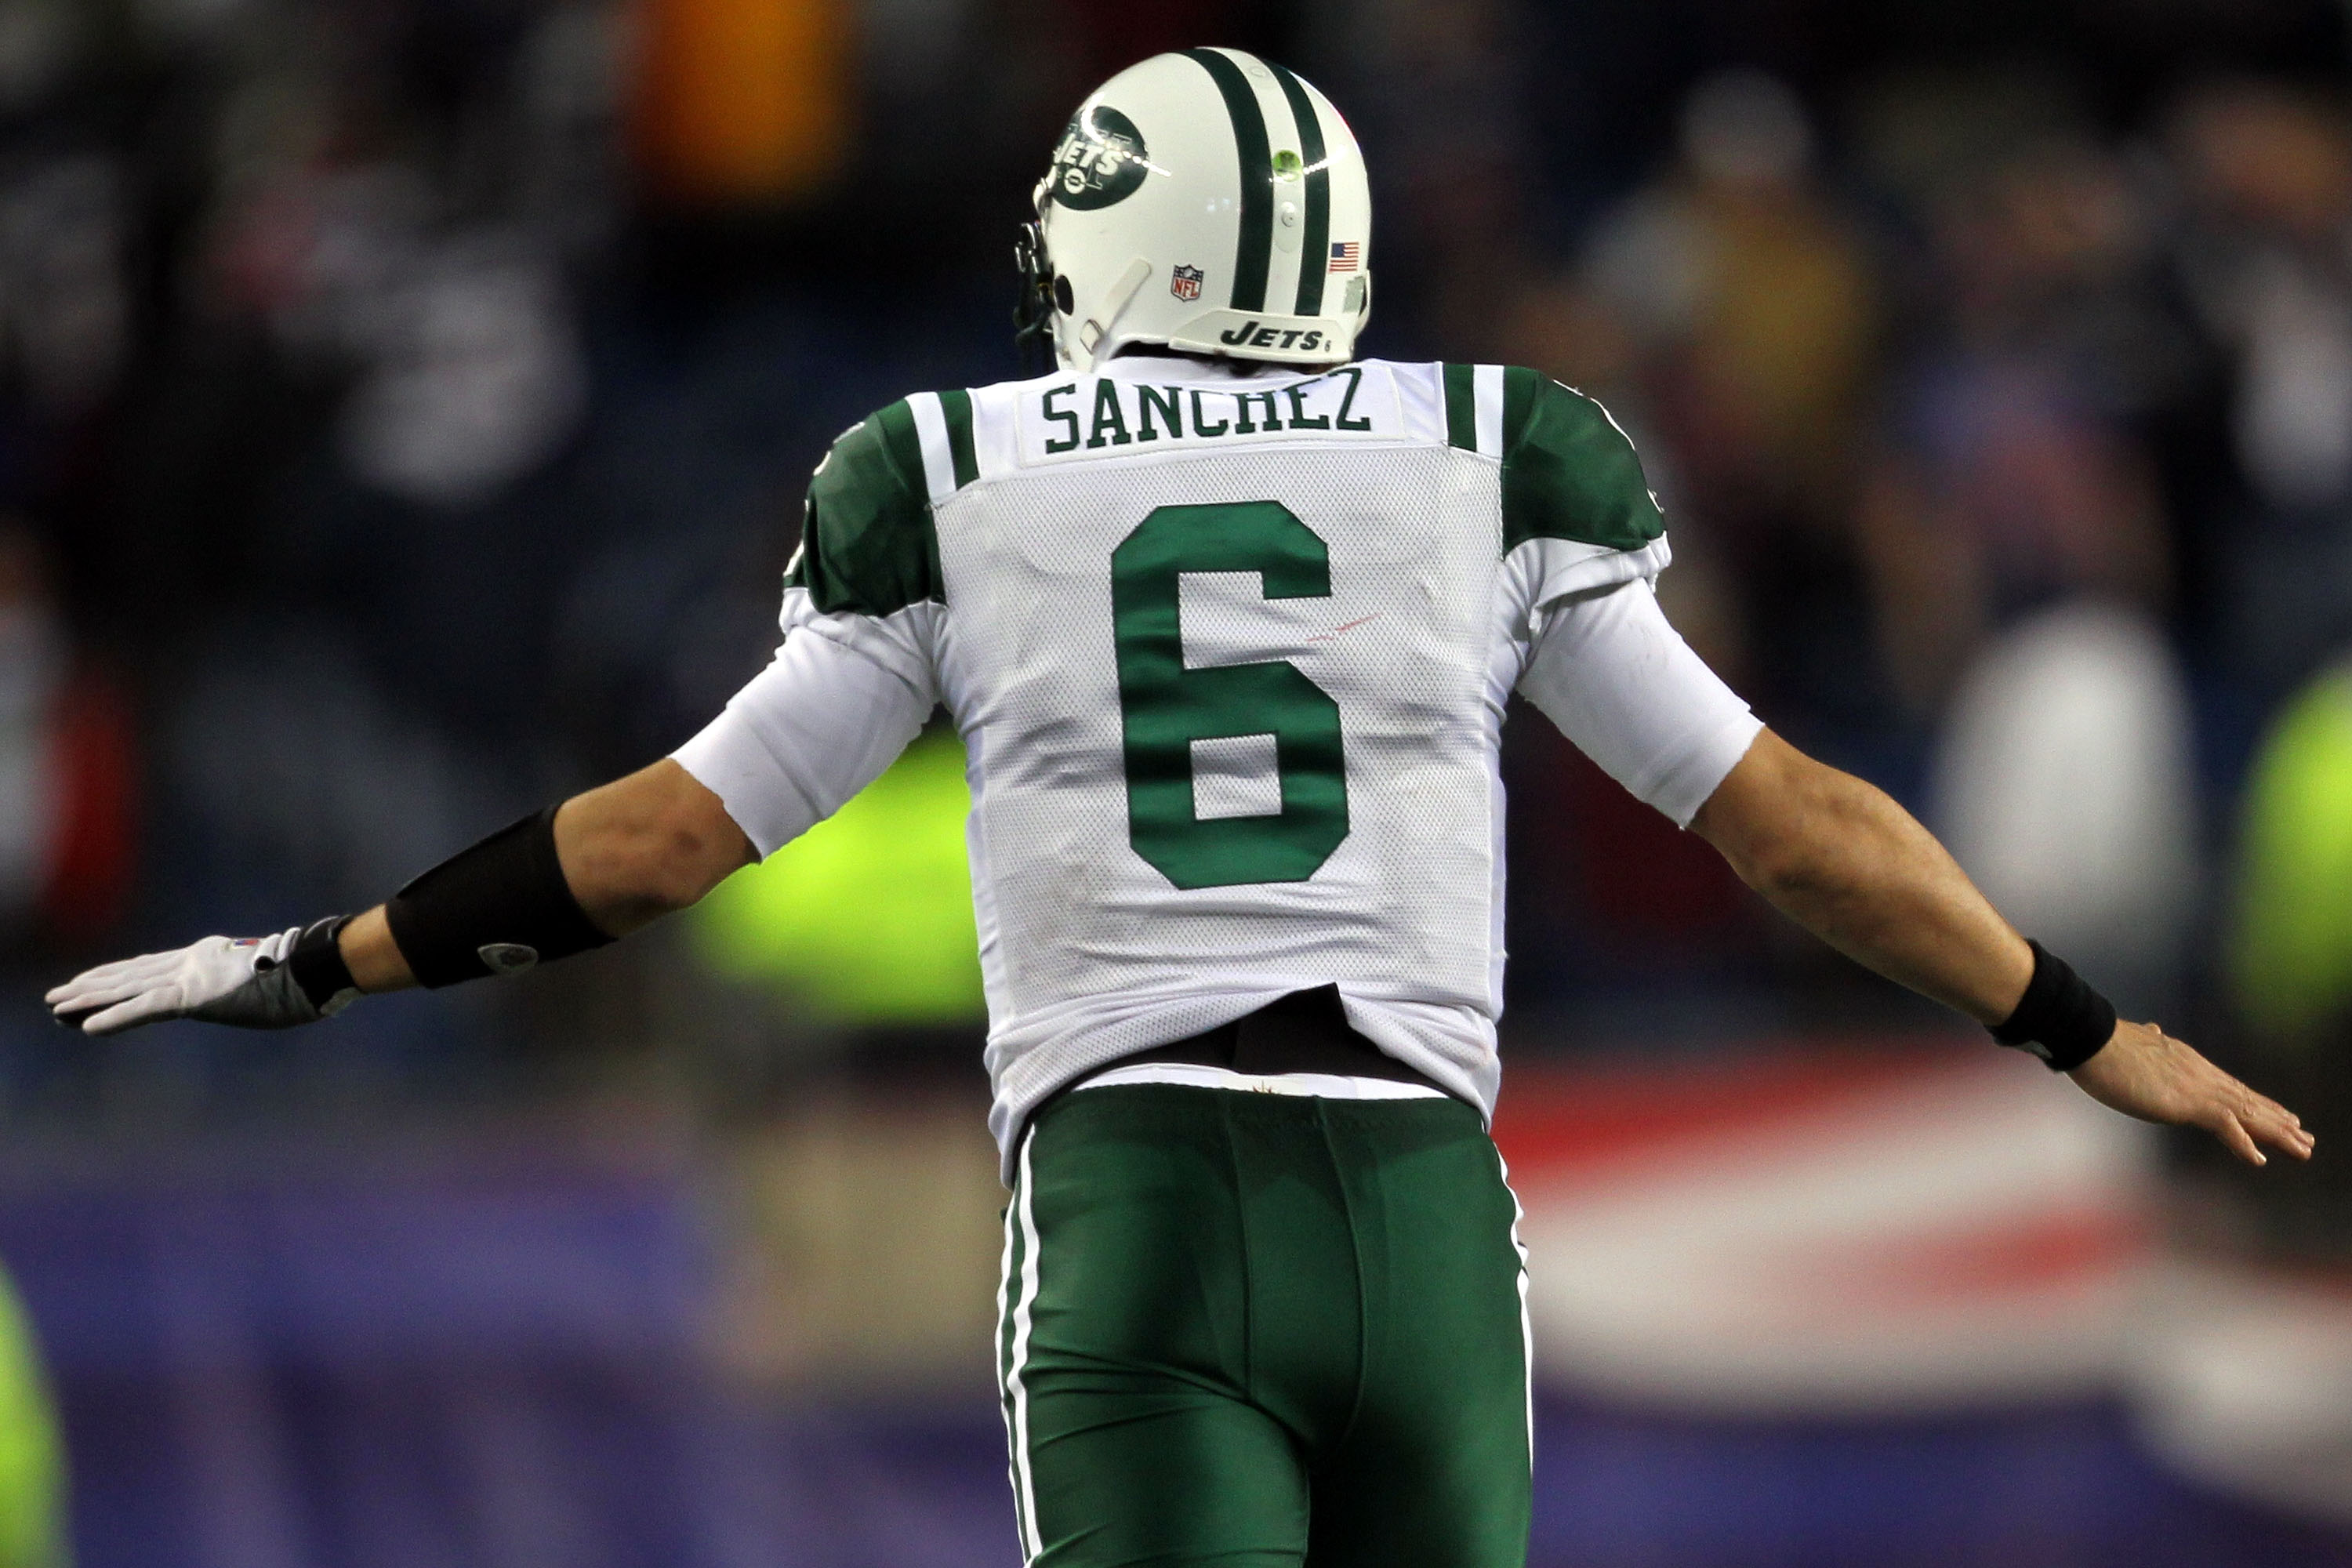 FOXBORO, MA - JANUARY 16:  Mark Sanchez #6 of the New York Jets celebrates after a touchdown late in the fourth quarter against the New England Patriots during their 2011 AFC divisional playoff game at Gillette Stadium on January 16, 2011 in Foxboro, Mass